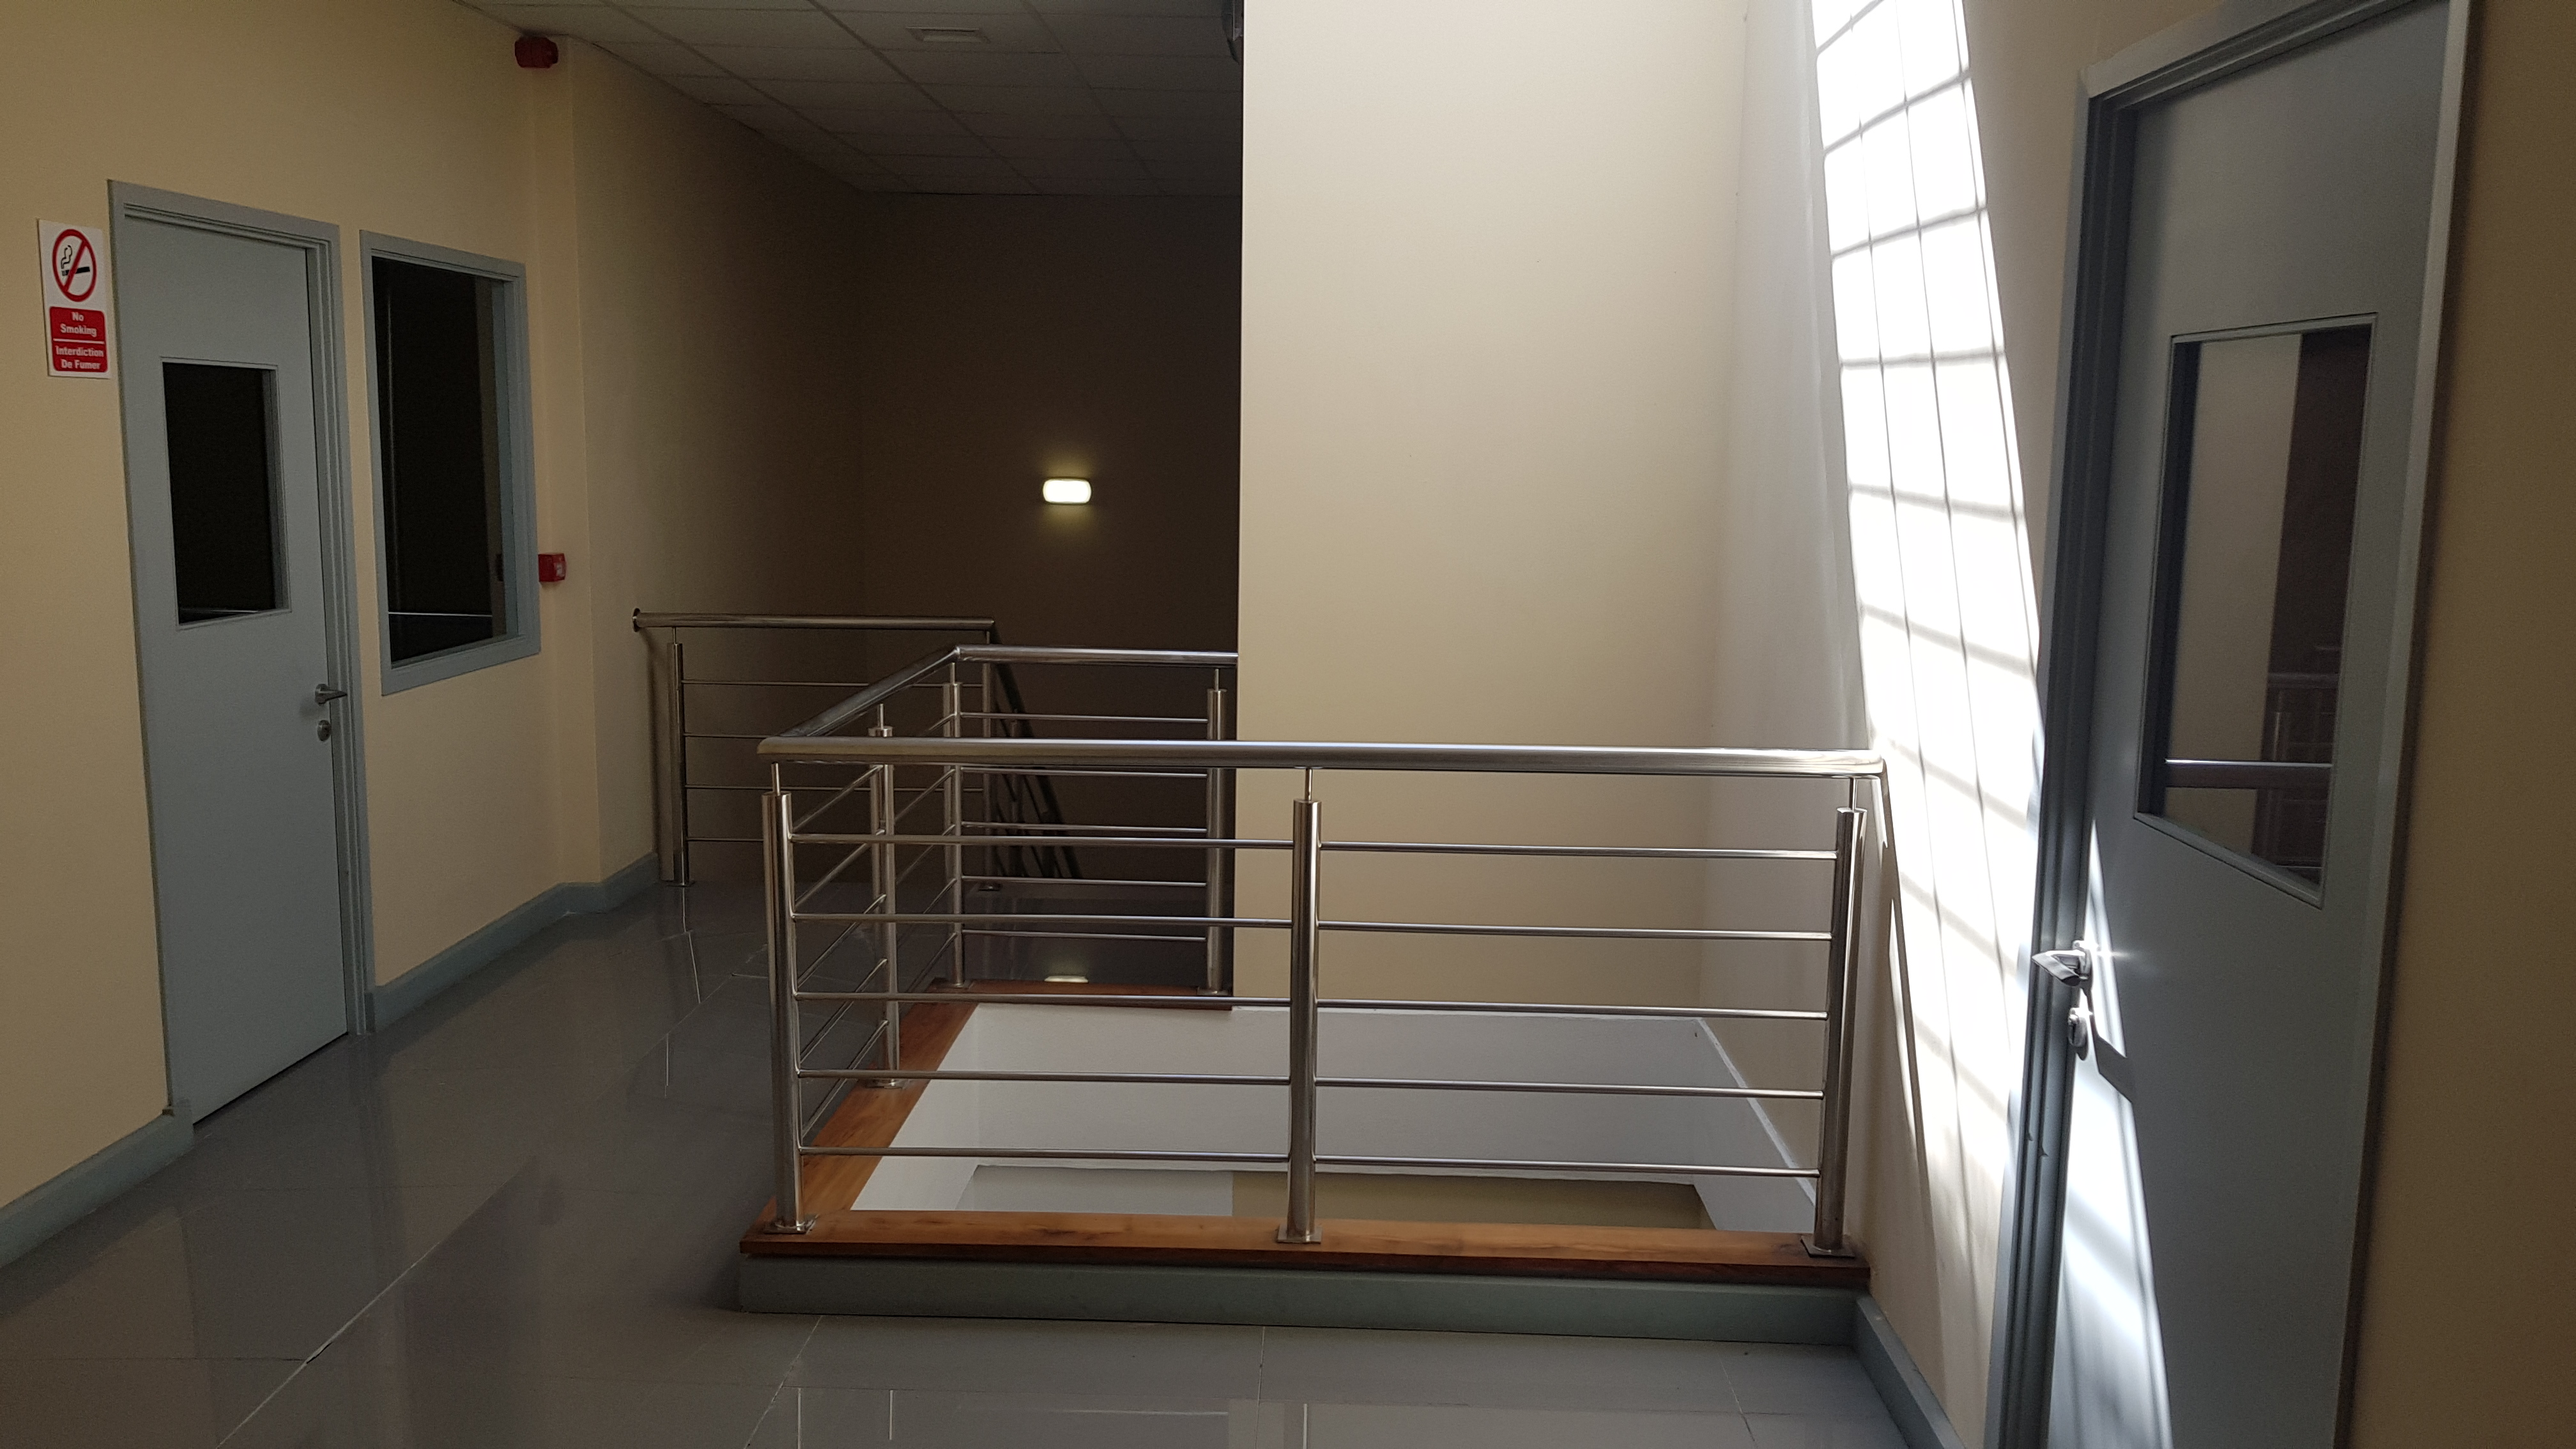 Office or Commercial space of 51m² for rent on the second floor, at 3 SSR Street (rue desforges) Port Louis